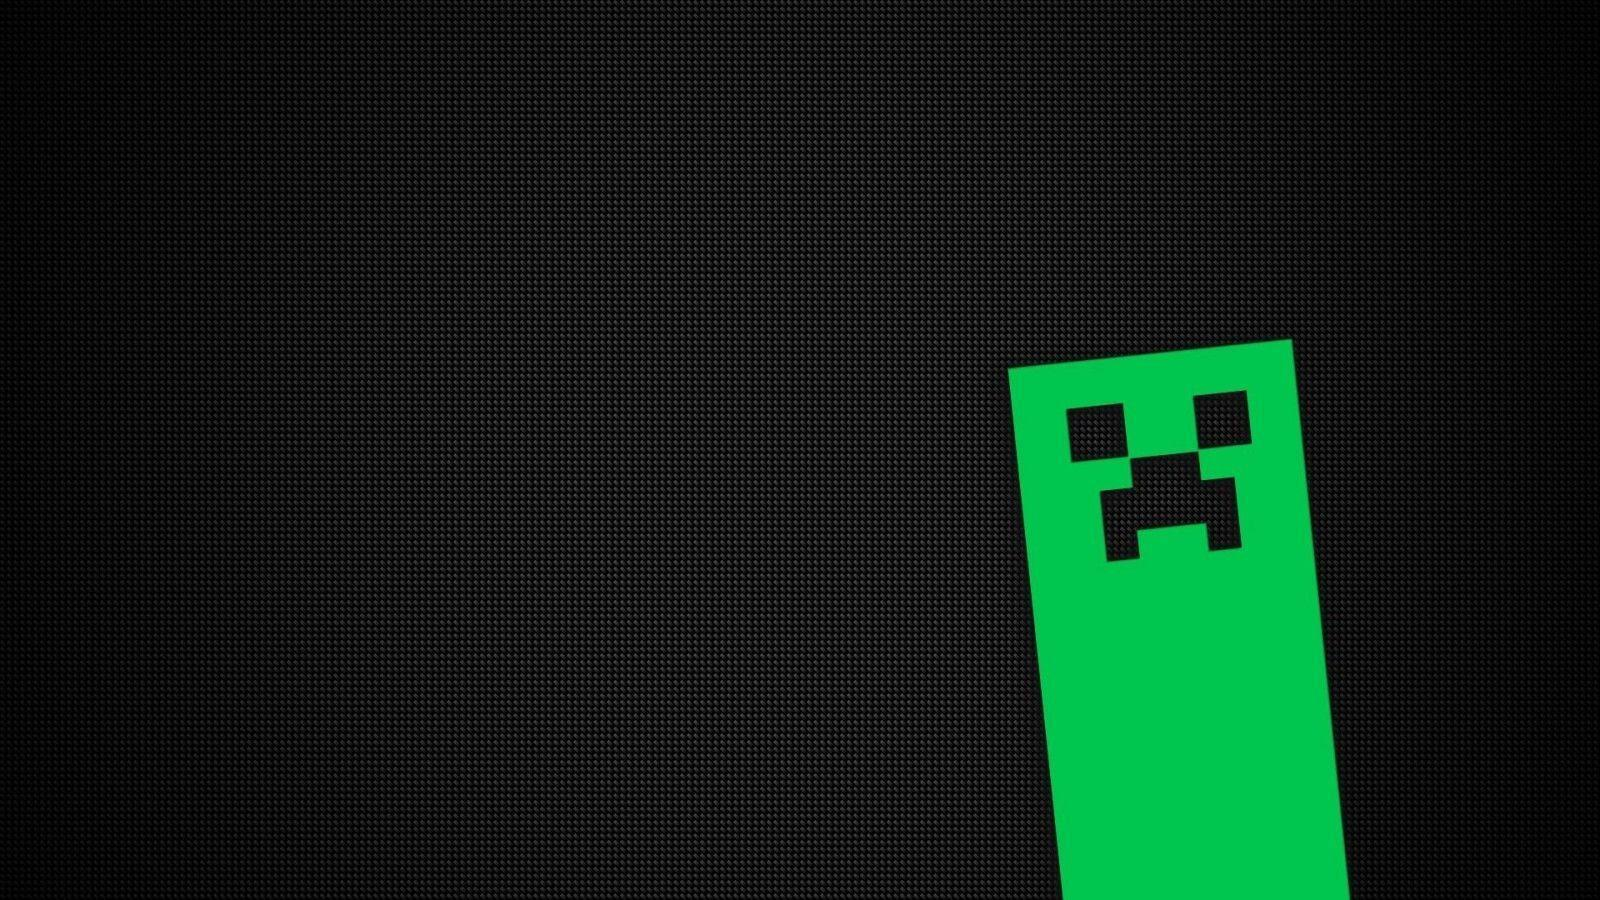 wallpaper hd minecraft green - photo #38